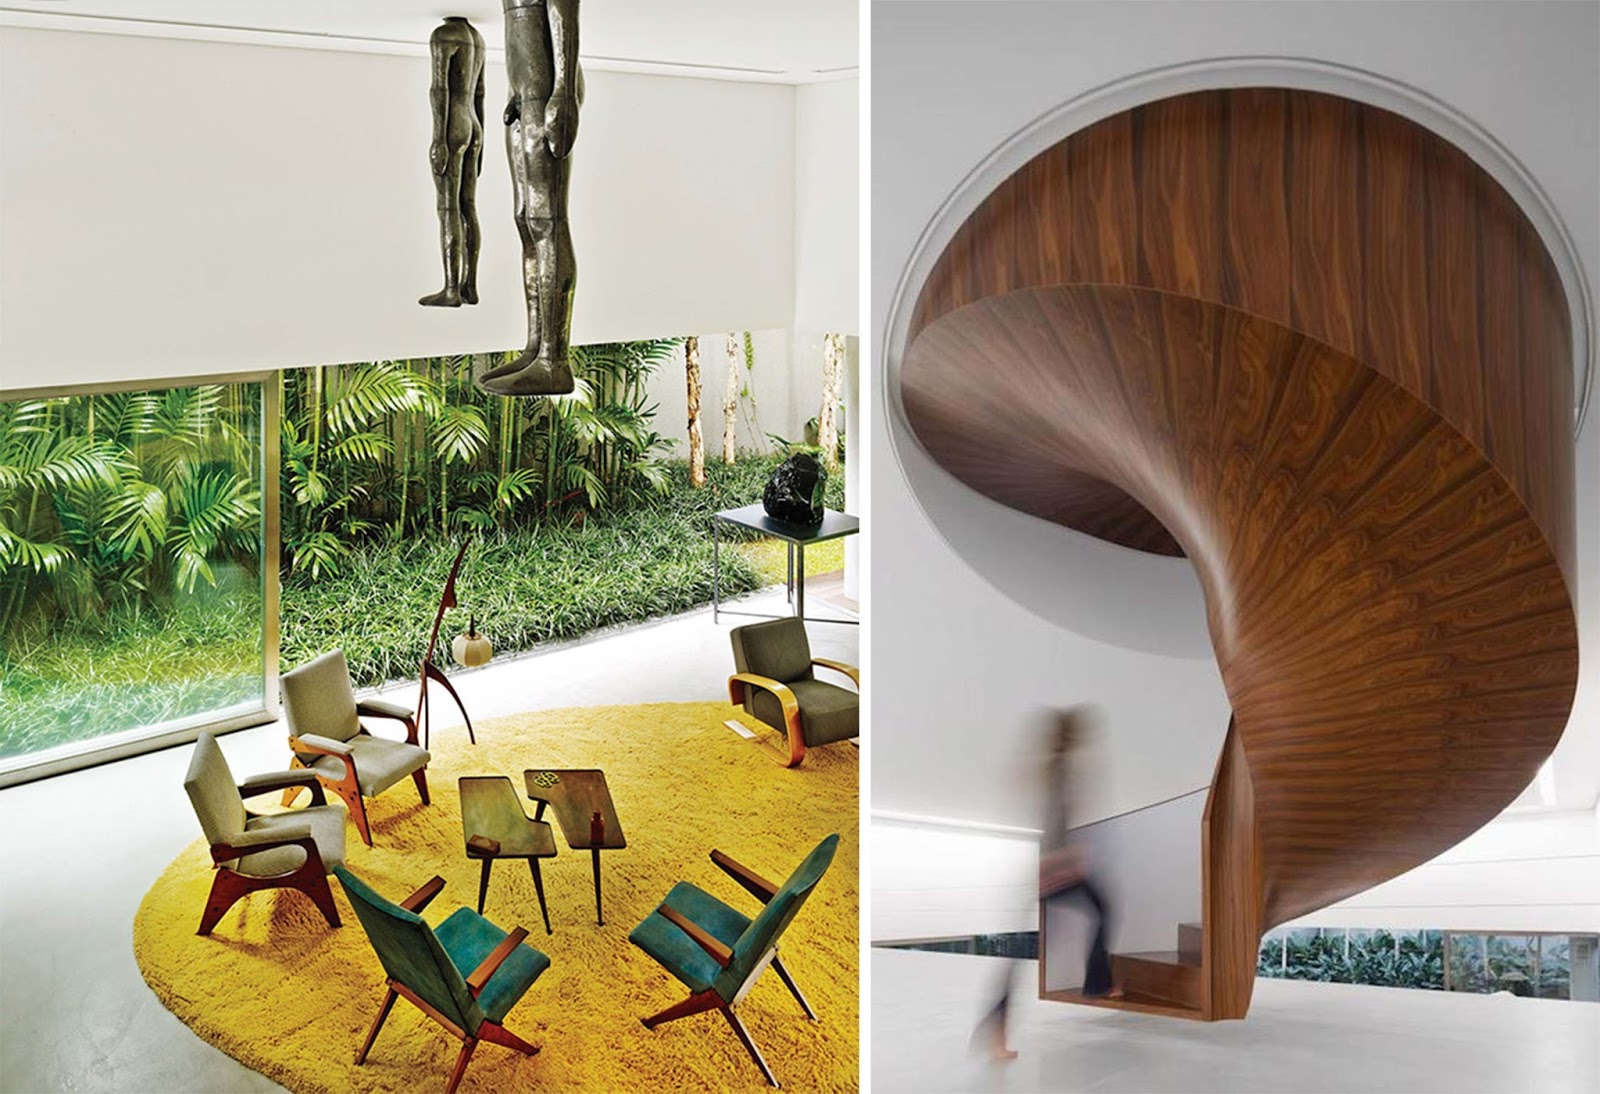 Casa cubo by isay weinfeld s o paulo arc art blog by for Piani casa 6 camere da letto